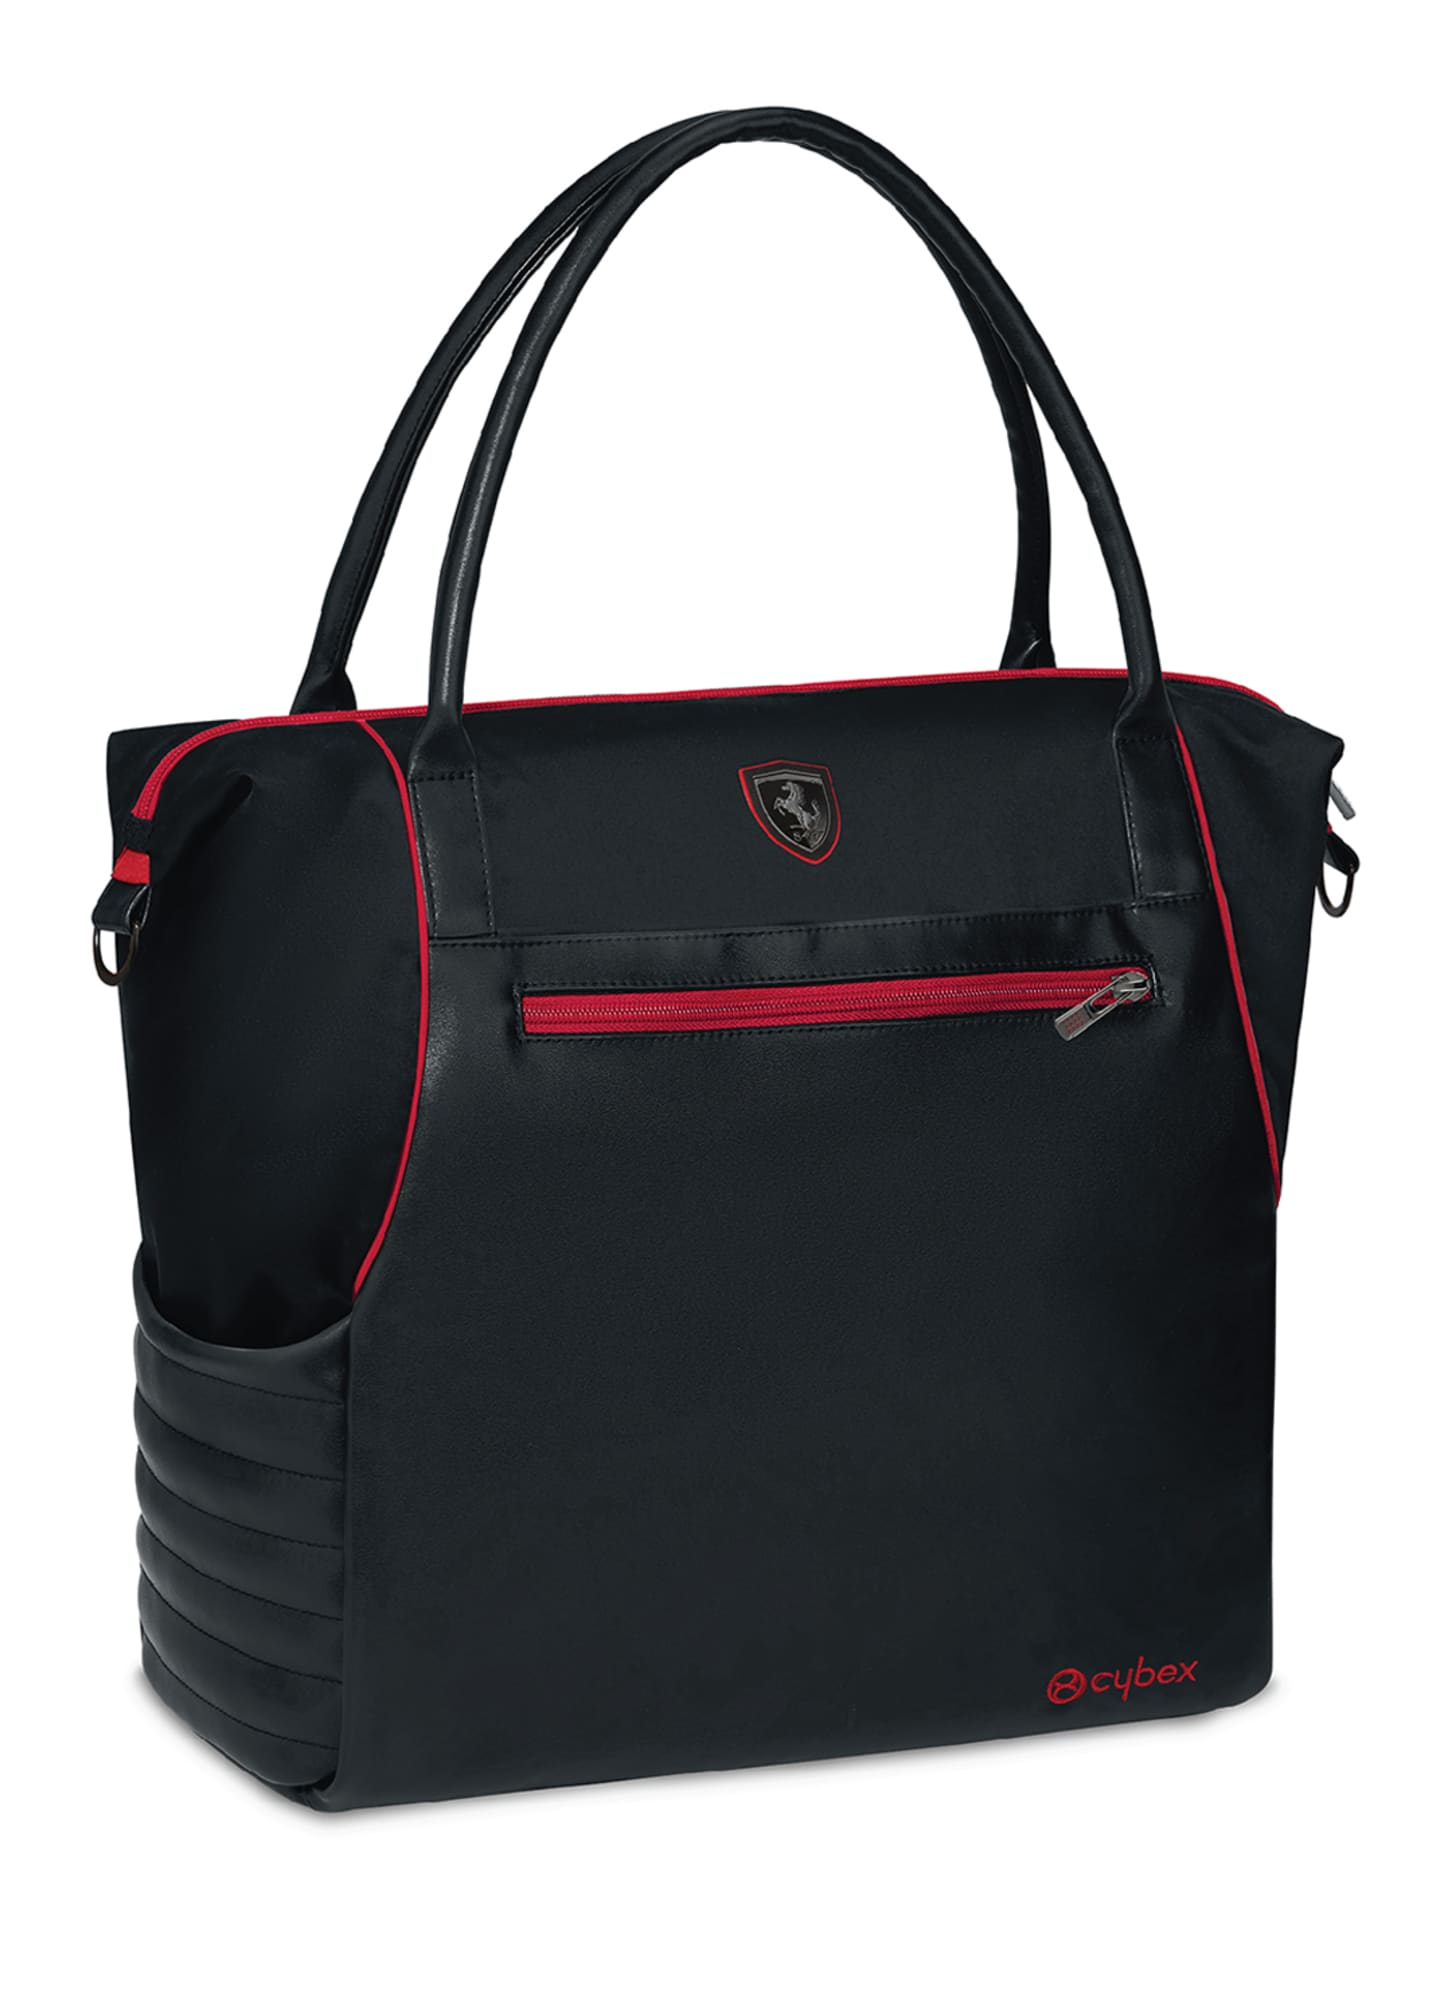 Cybex Ferrari Diaper Changing Bag, Black